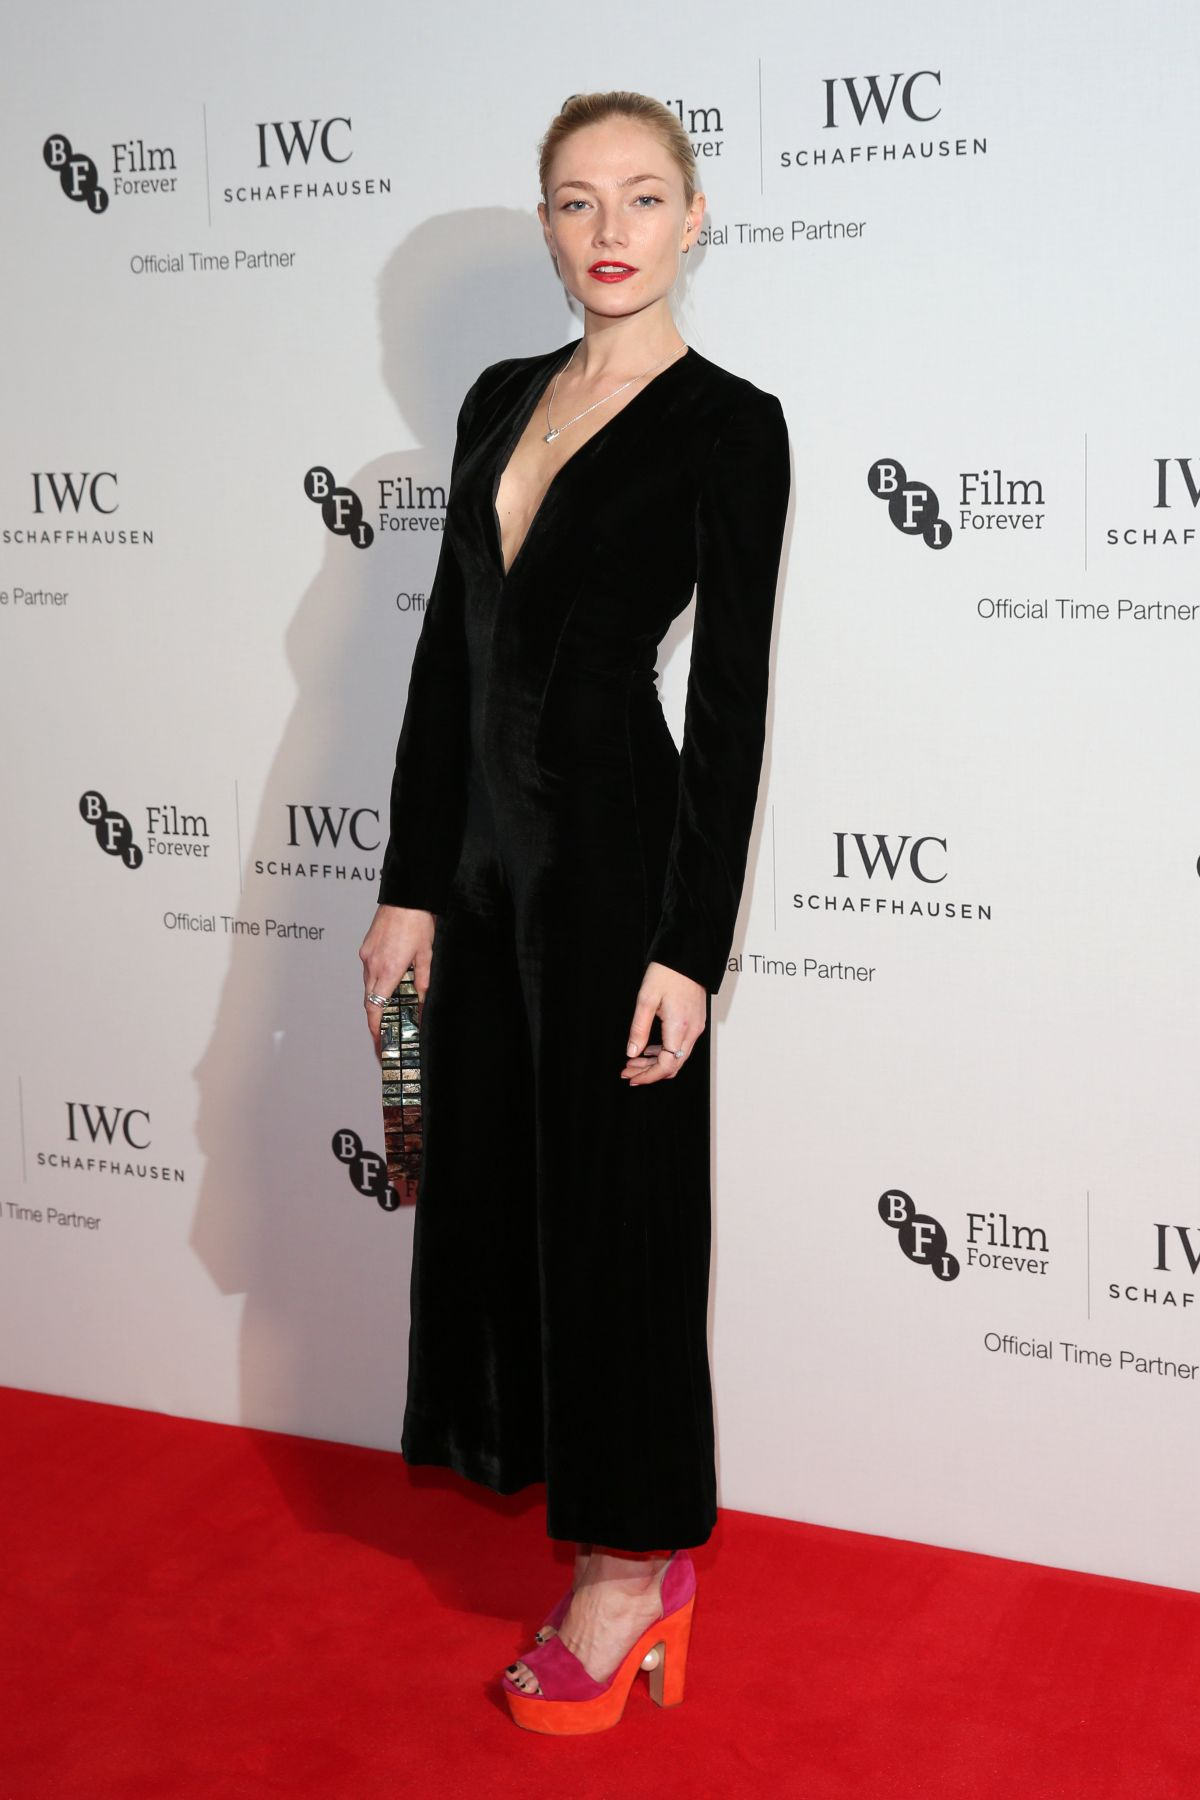 CLARA PAGET at IWC Schaffhausen Dinner in Honour of BFI Rosewood in London 10/04/2016